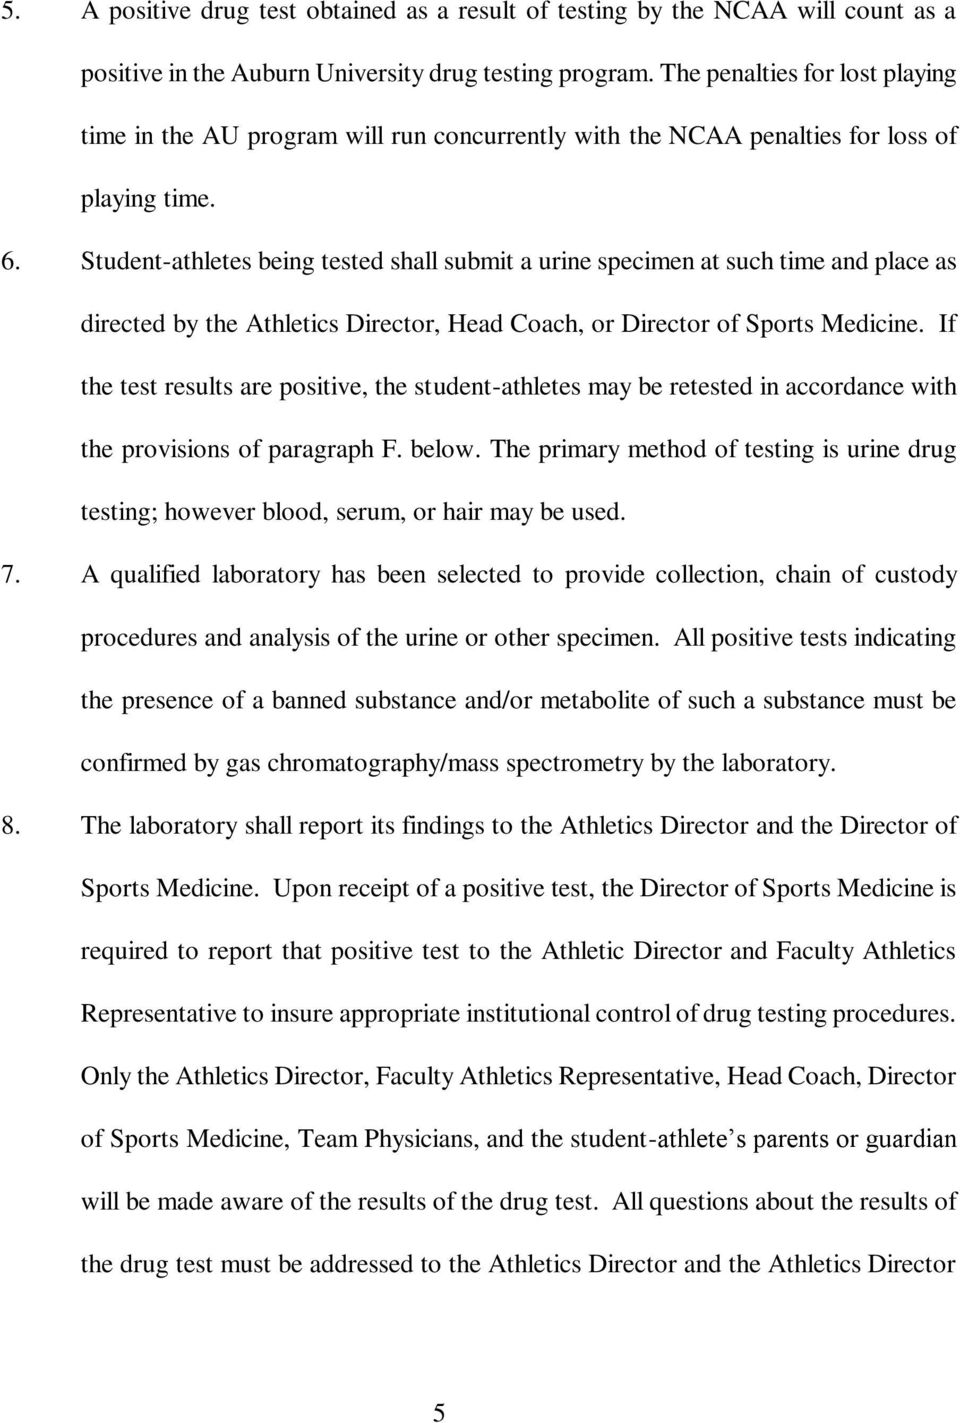 Student-athletes being tested shall submit a urine specimen at such time and place as directed by the Athletics Director, Head Coach, or Director of Sports Medicine.